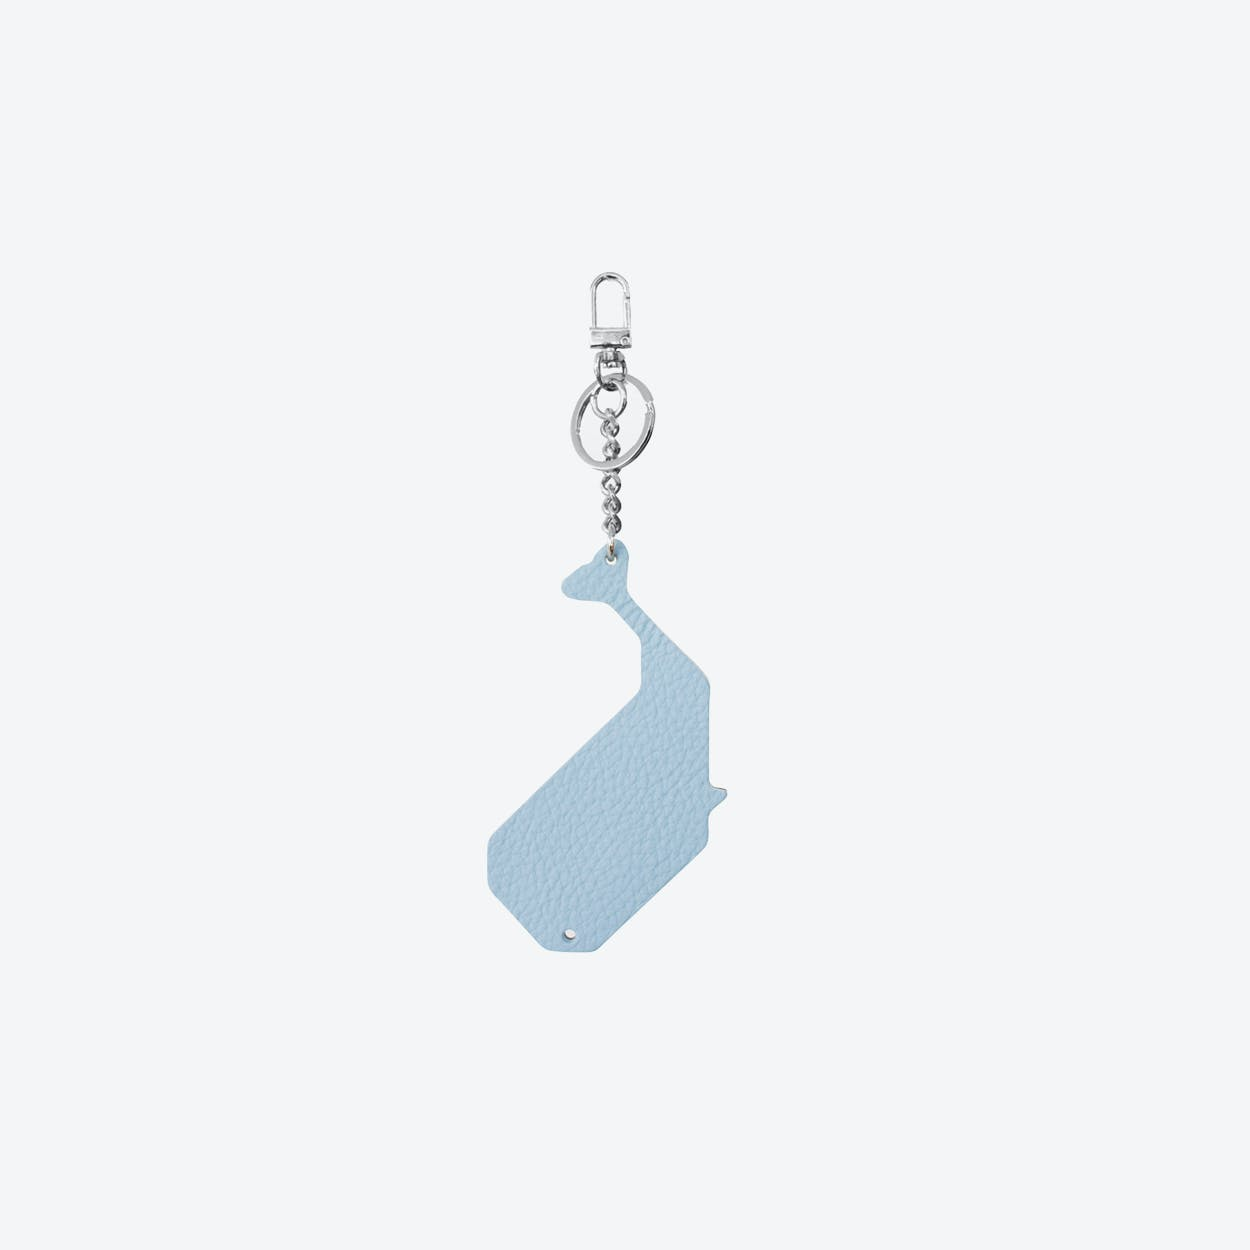 Whale PET Bag Charm in Ciel